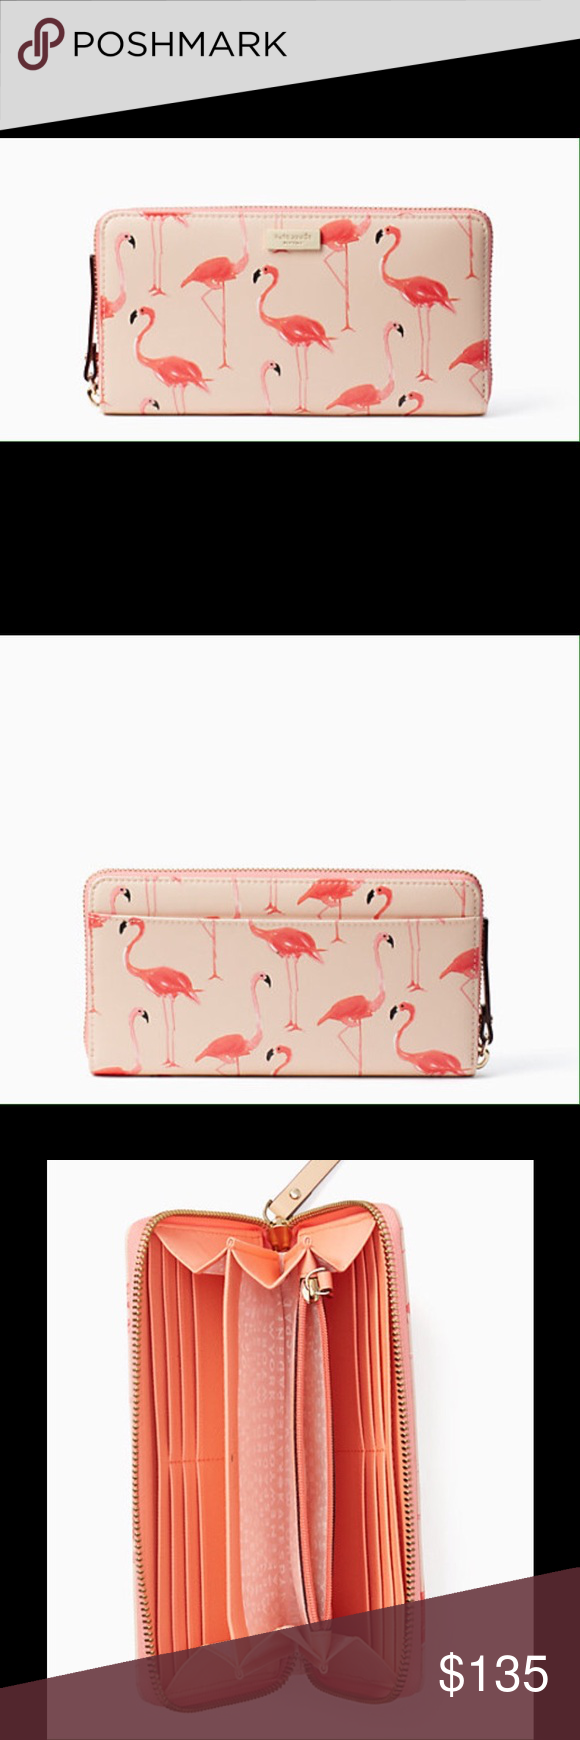 Kate Spade Shore Street Lacey Zip Around Wallet Kate Spade Shore Street Lacey Zip Around Wallet Flamingo Print kate spade Bags Wallets